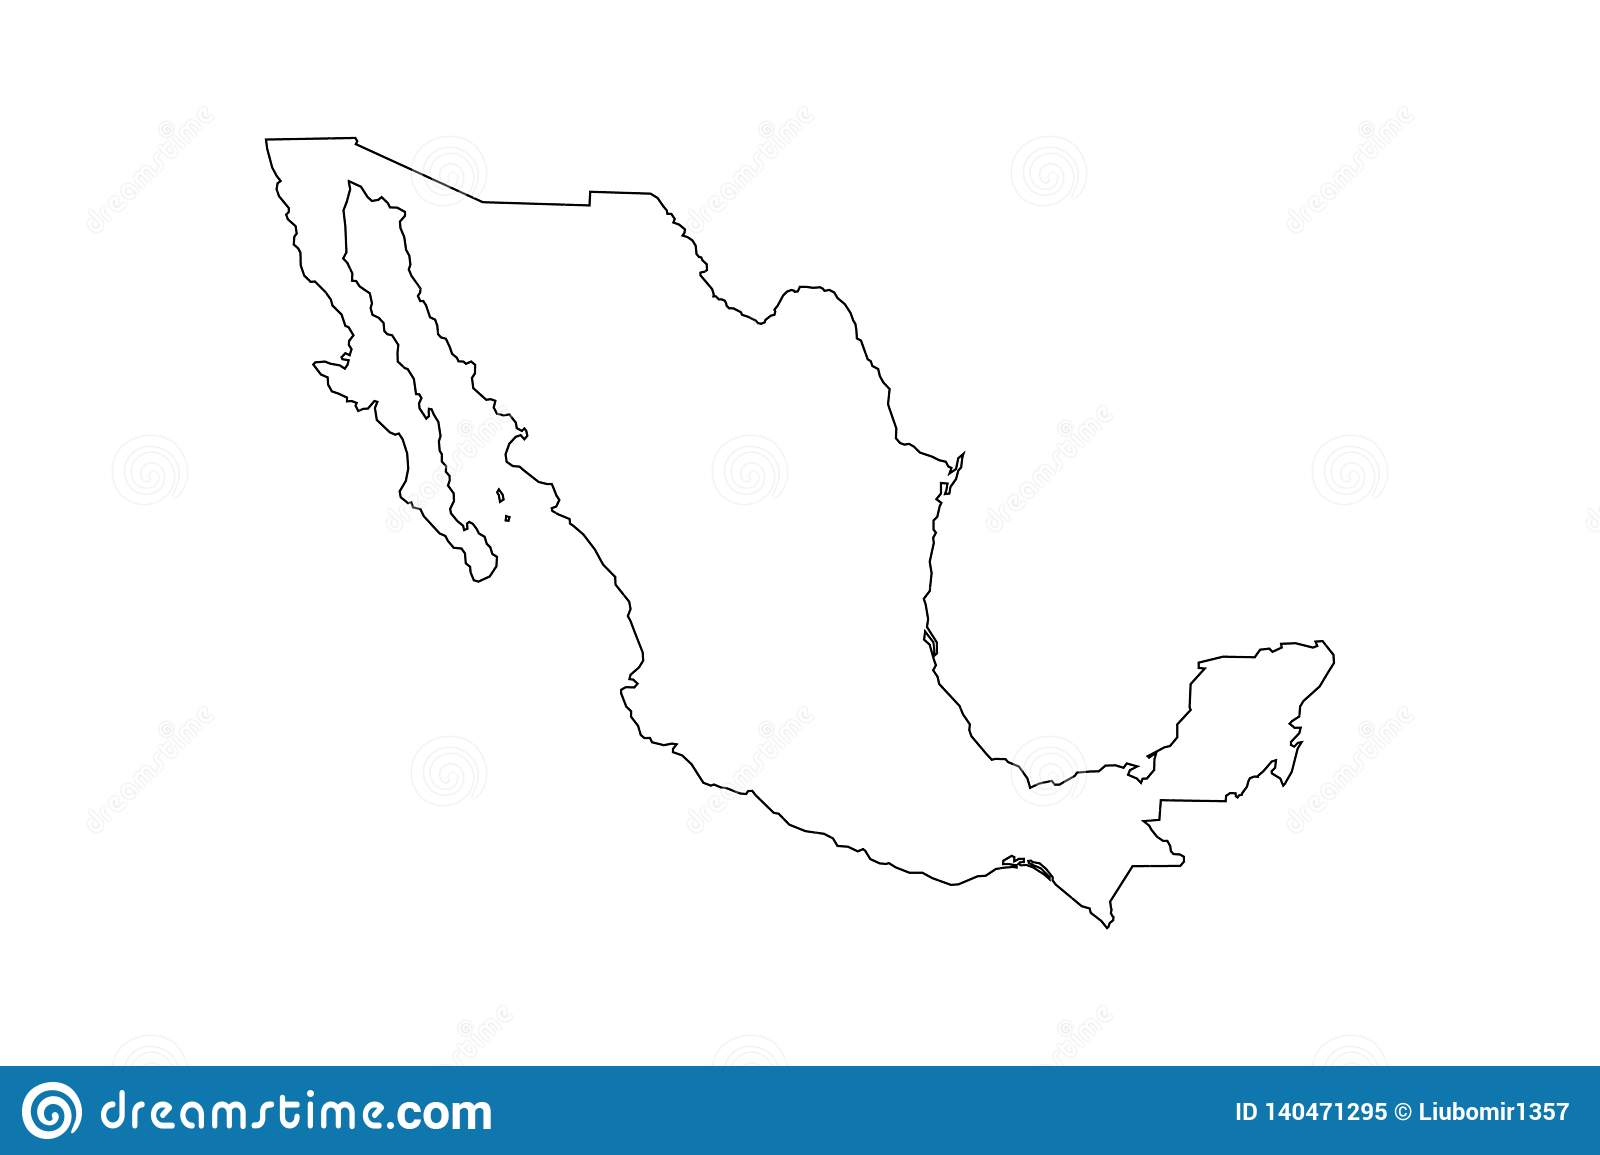 Black Outline Of Mexico Map Stock Vector - Illustration of